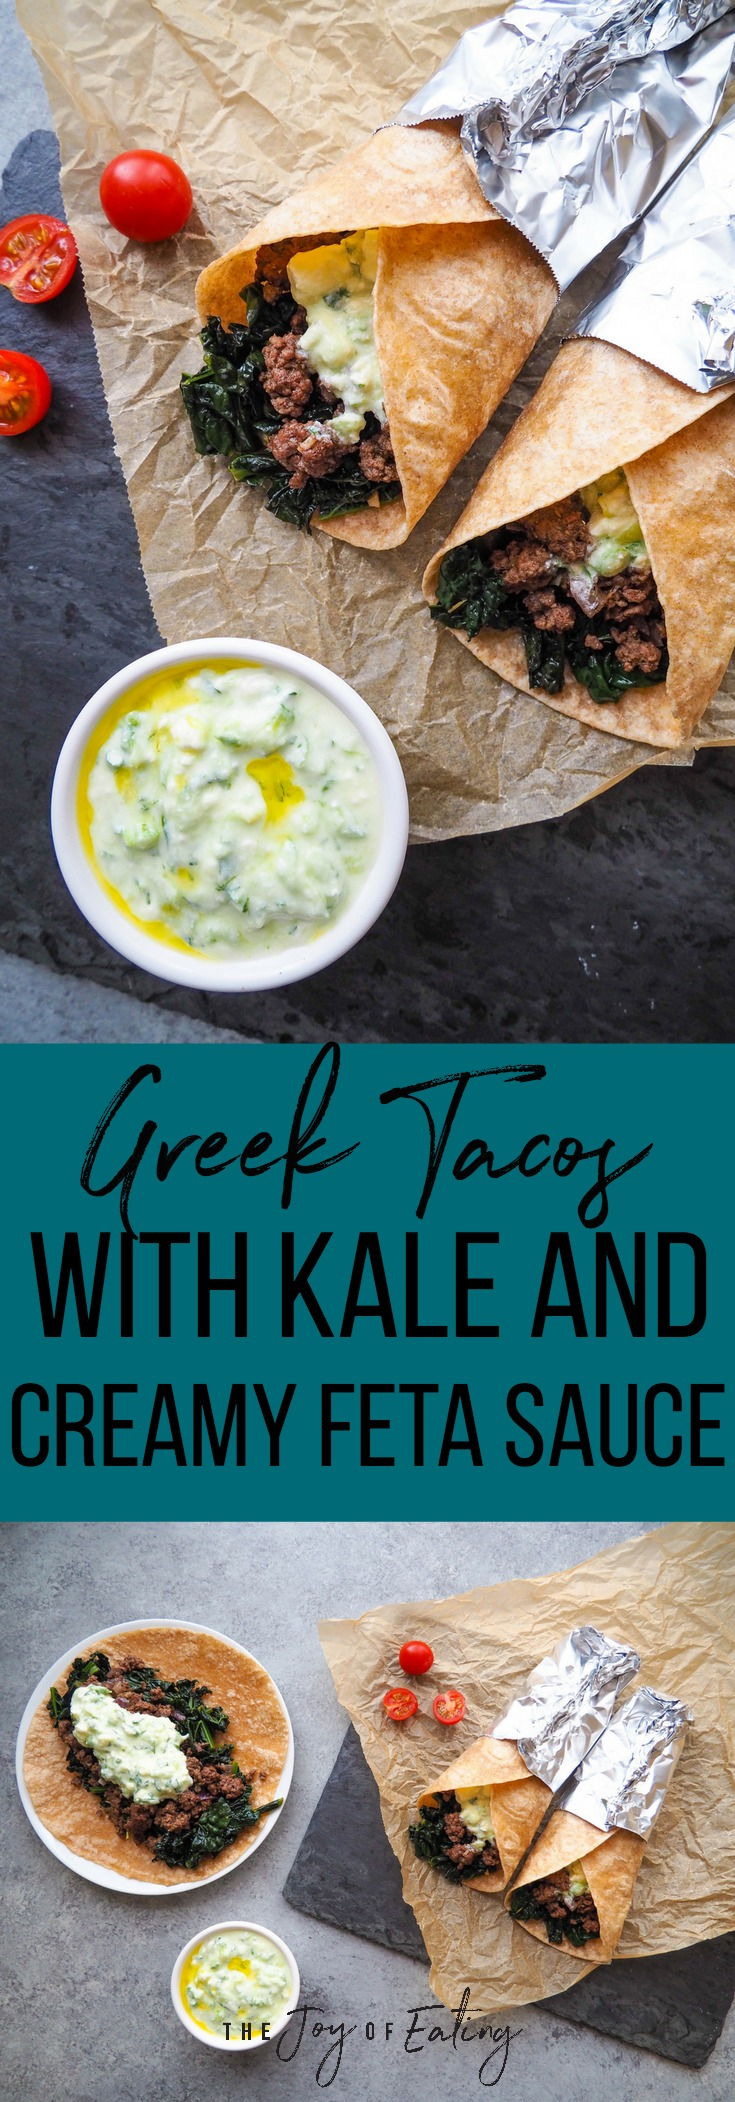 Make these Greek Tacos with Kale and Creamy Feta Sauce as a meal the whole family will love! #Greek #beef #taco #kale